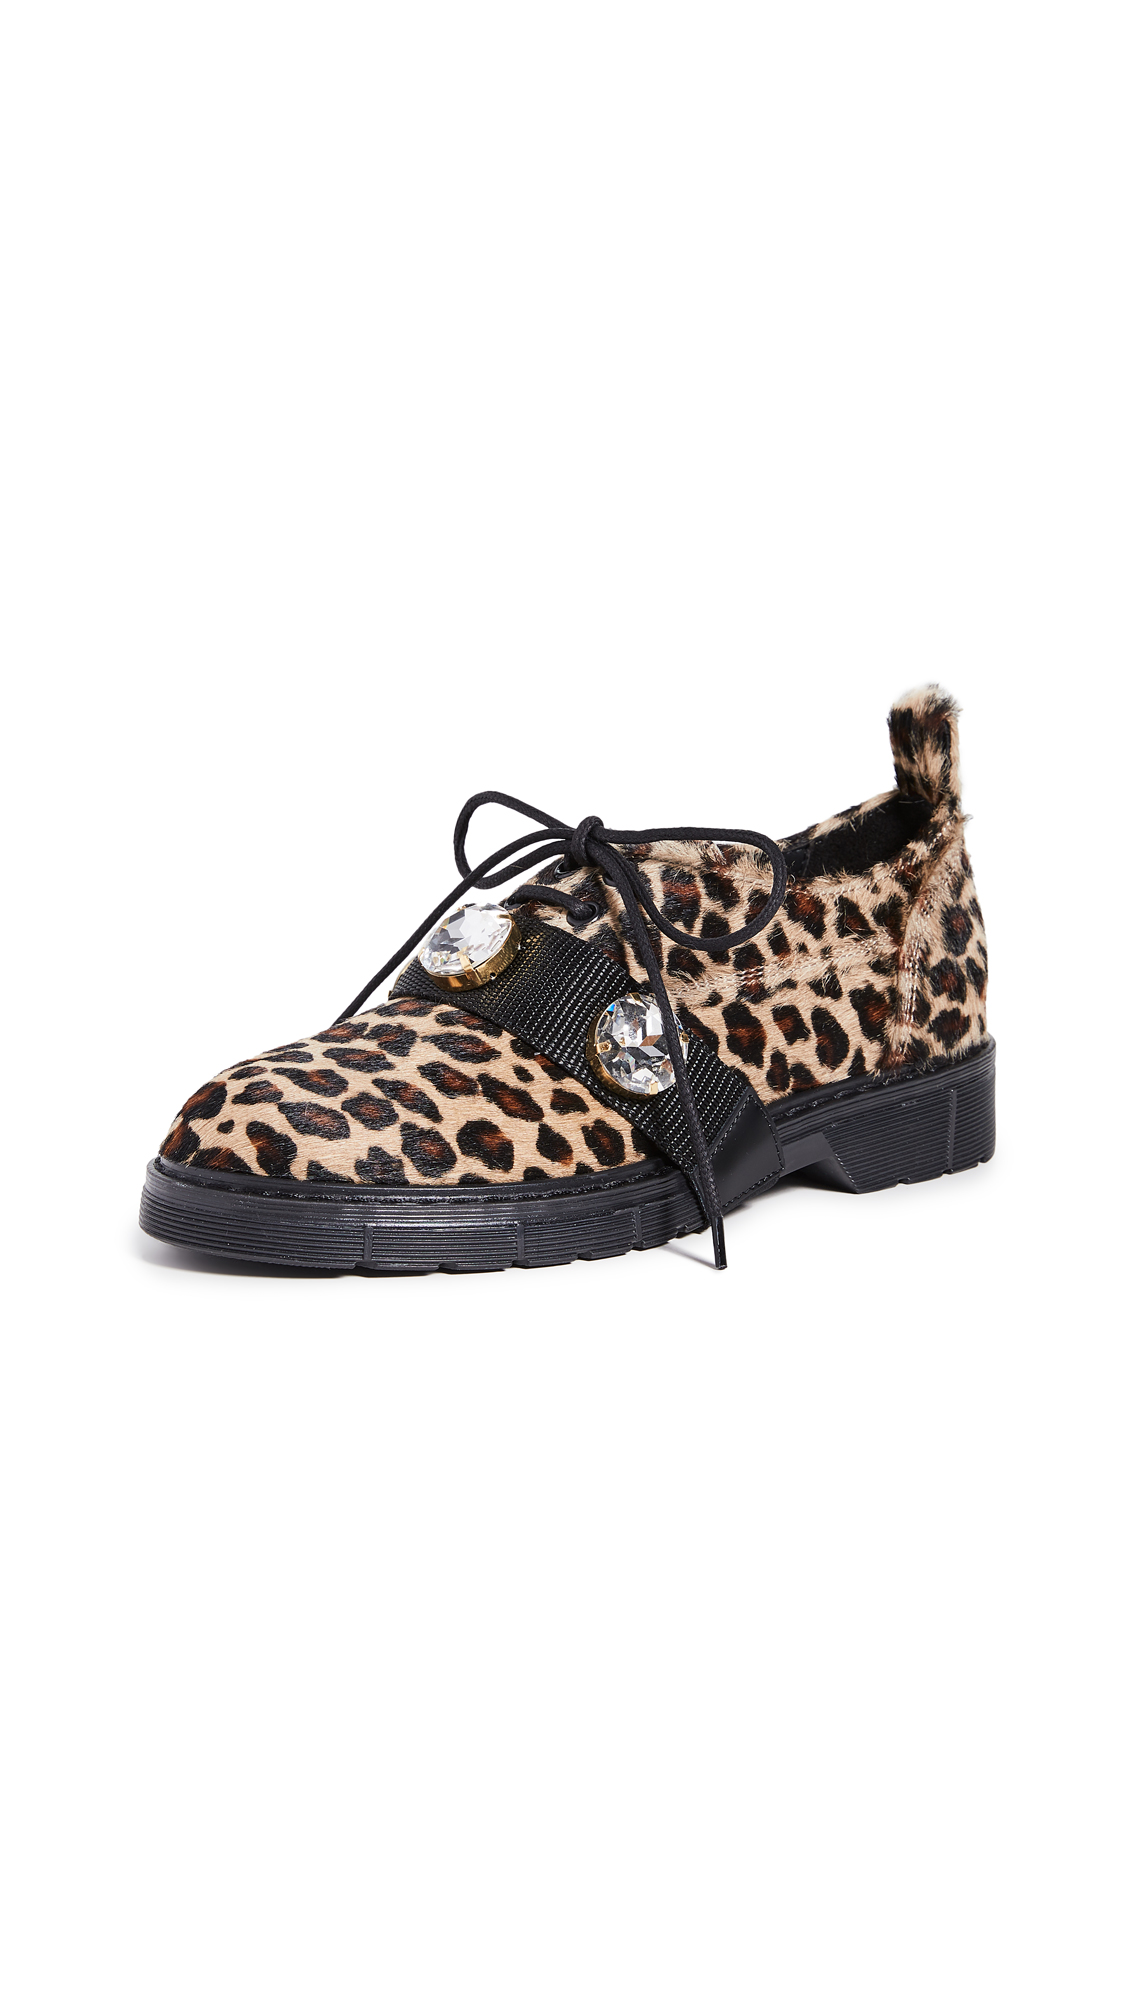 Polly Plume Kara Zoo Oxfords - 80% Off Sale